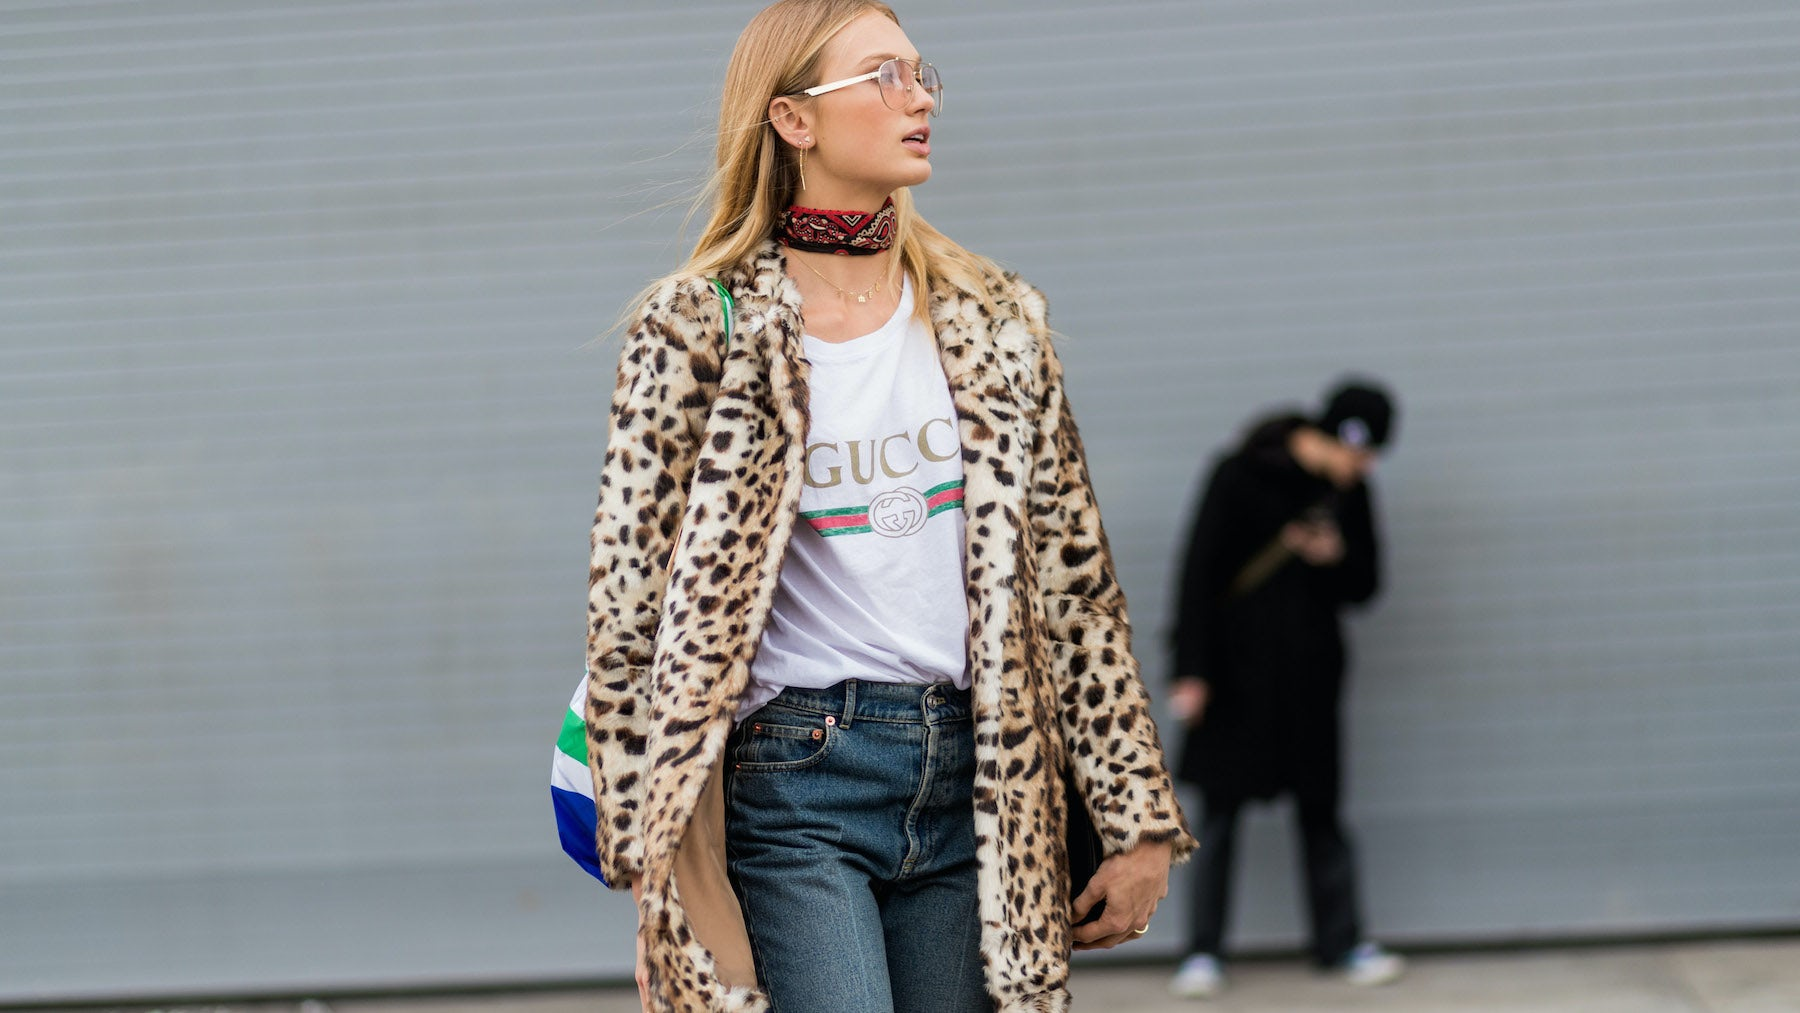 Romee Strijd wearing a Gucci logo T-shirt   Source: Getty Images